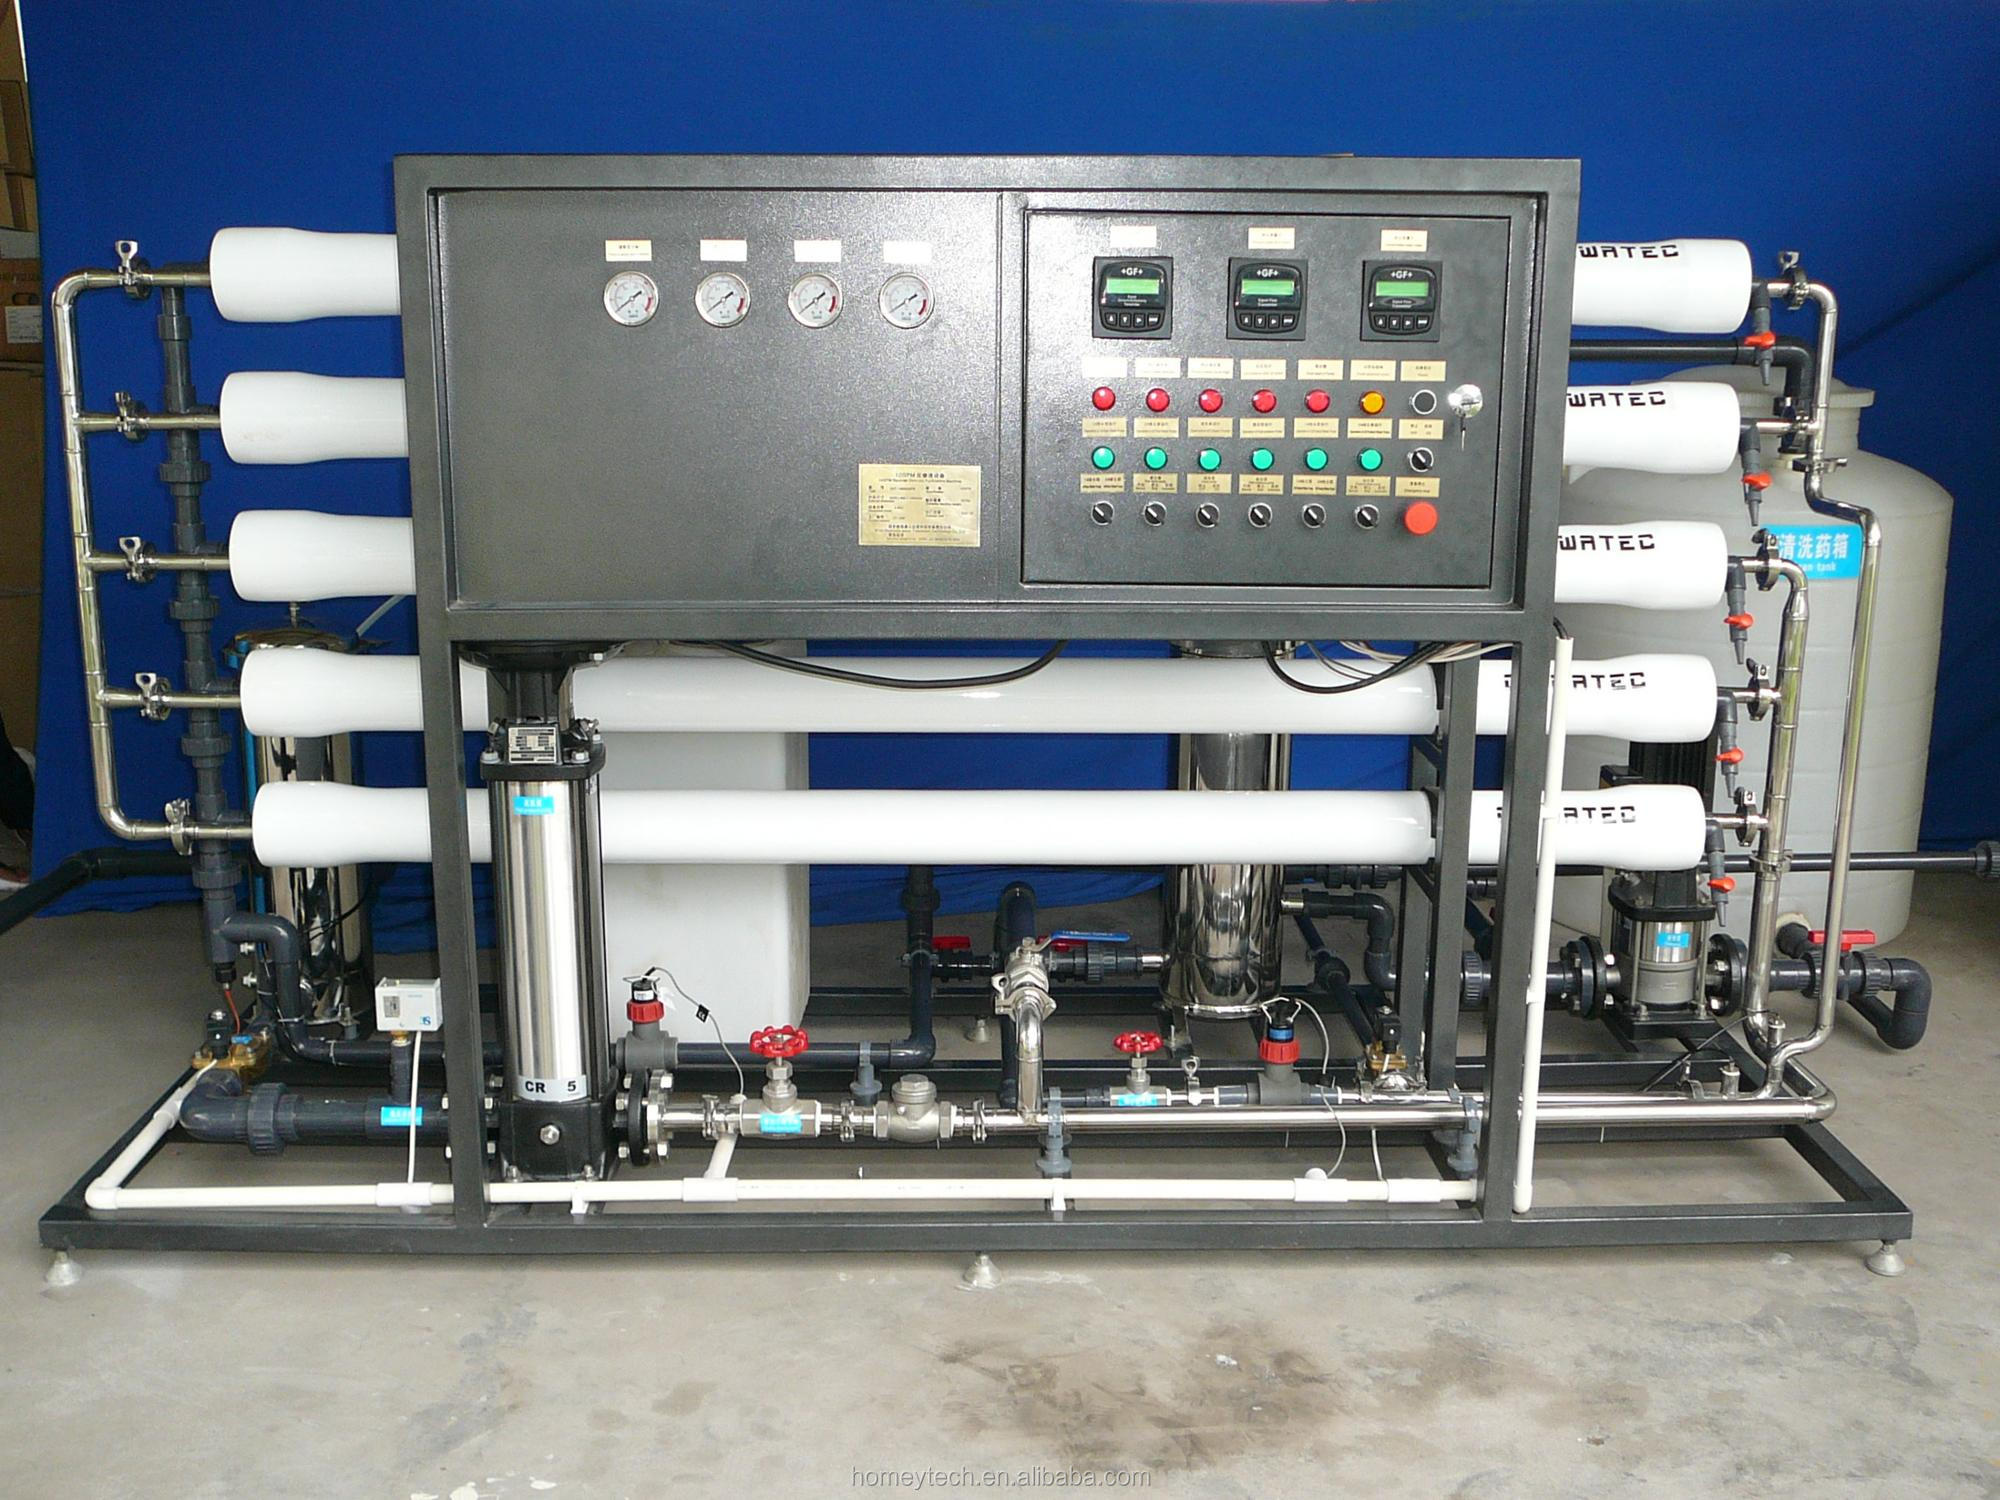 Newest 1 ton drinking water treatment plant/water purifier unit